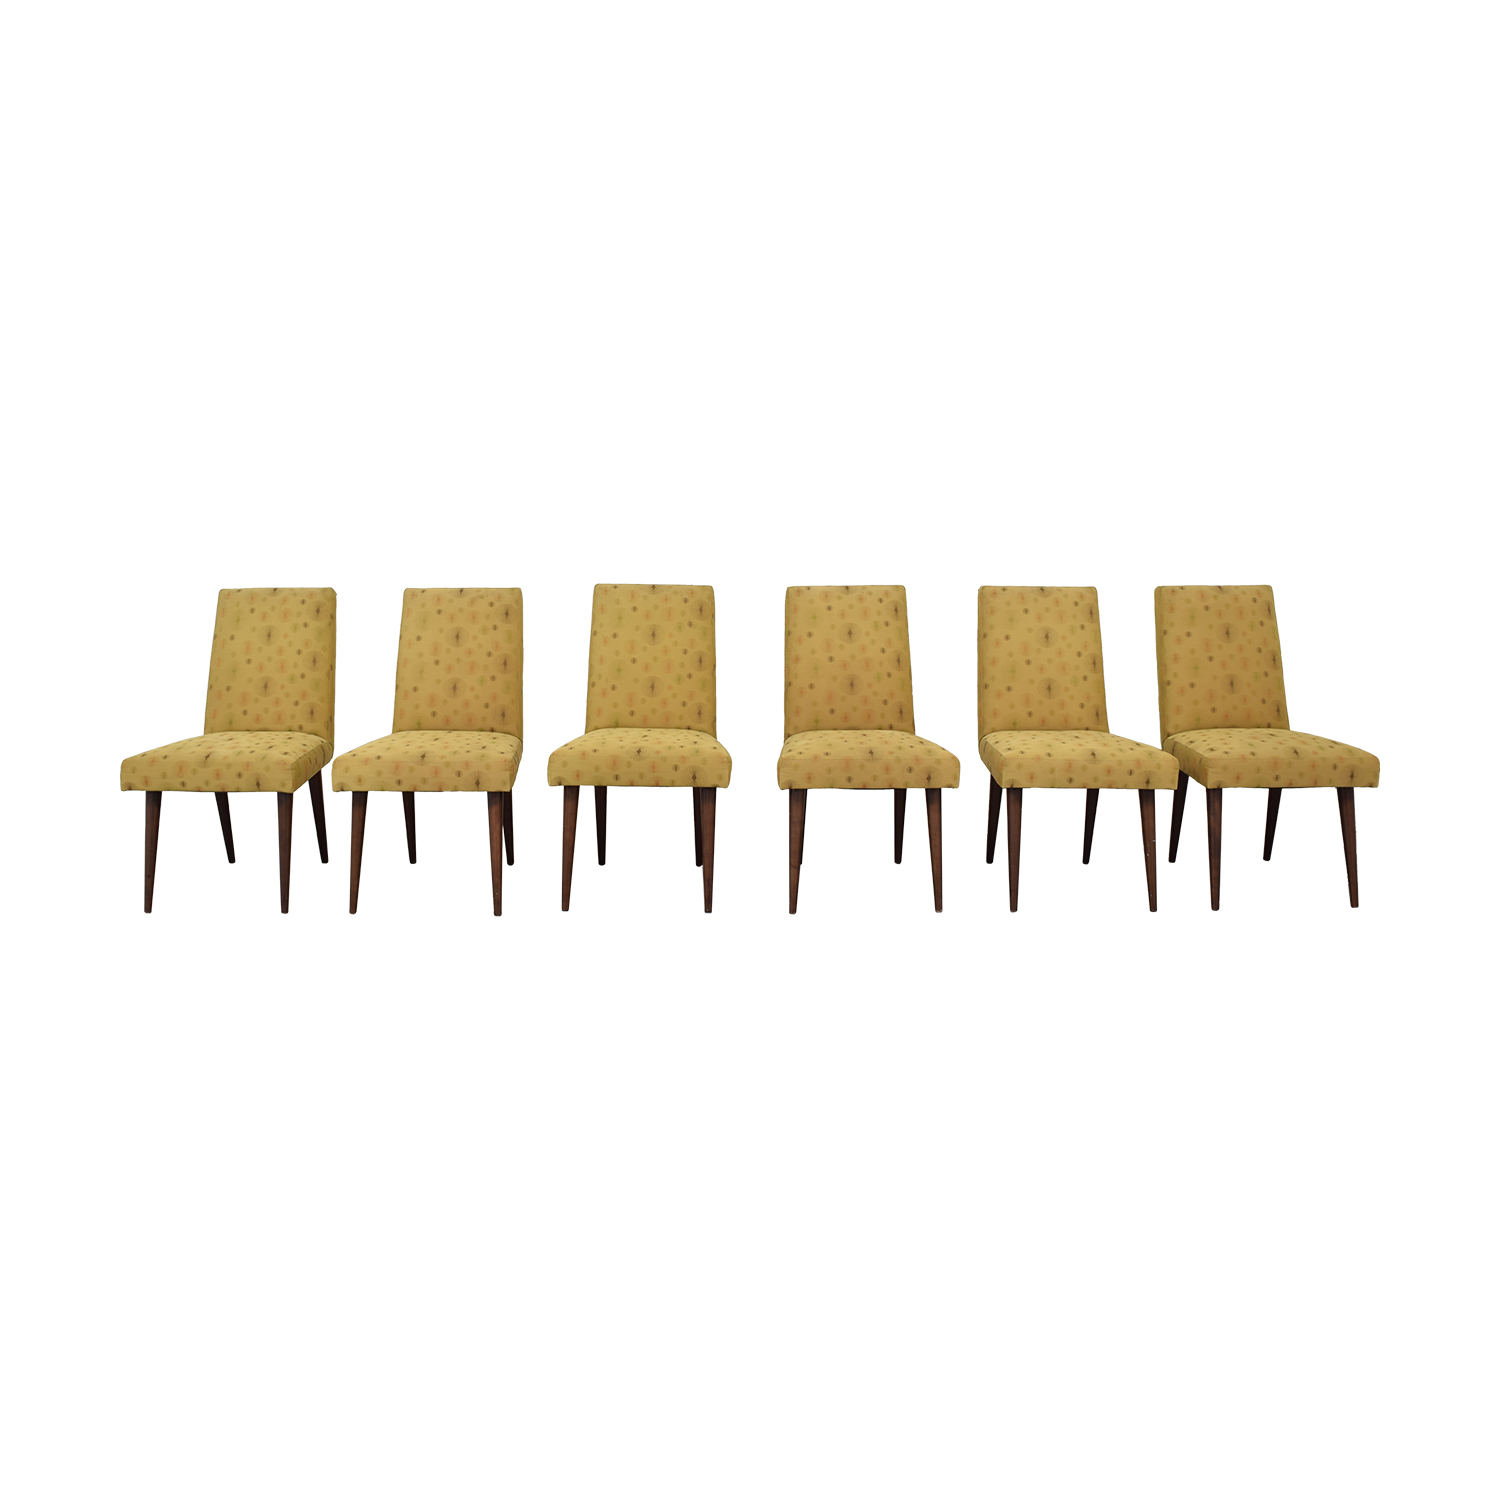 Room & Board Room & Board Multi-Colored Dining Chairs used